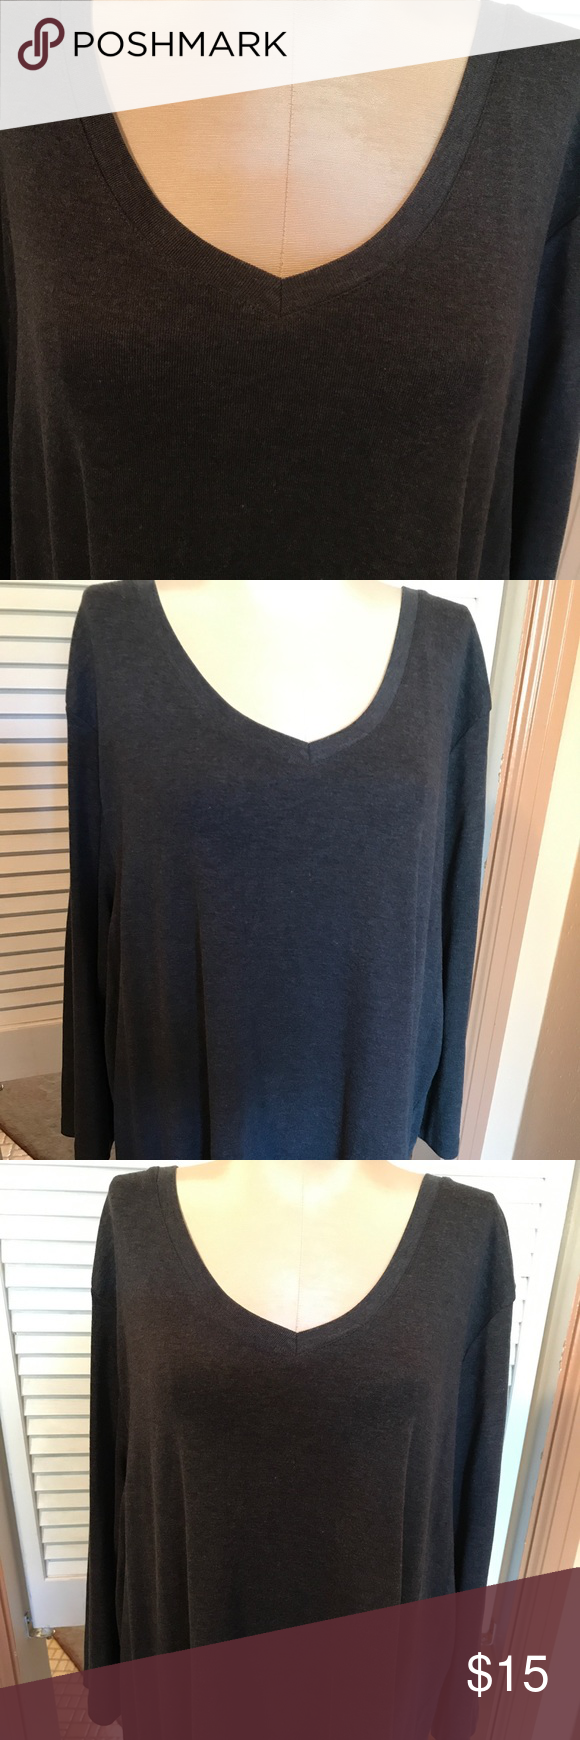 840f9ab6ab1 ➕ JC Penney St. John s Bay Women s Top Plus 3X EUC I m listing as ...